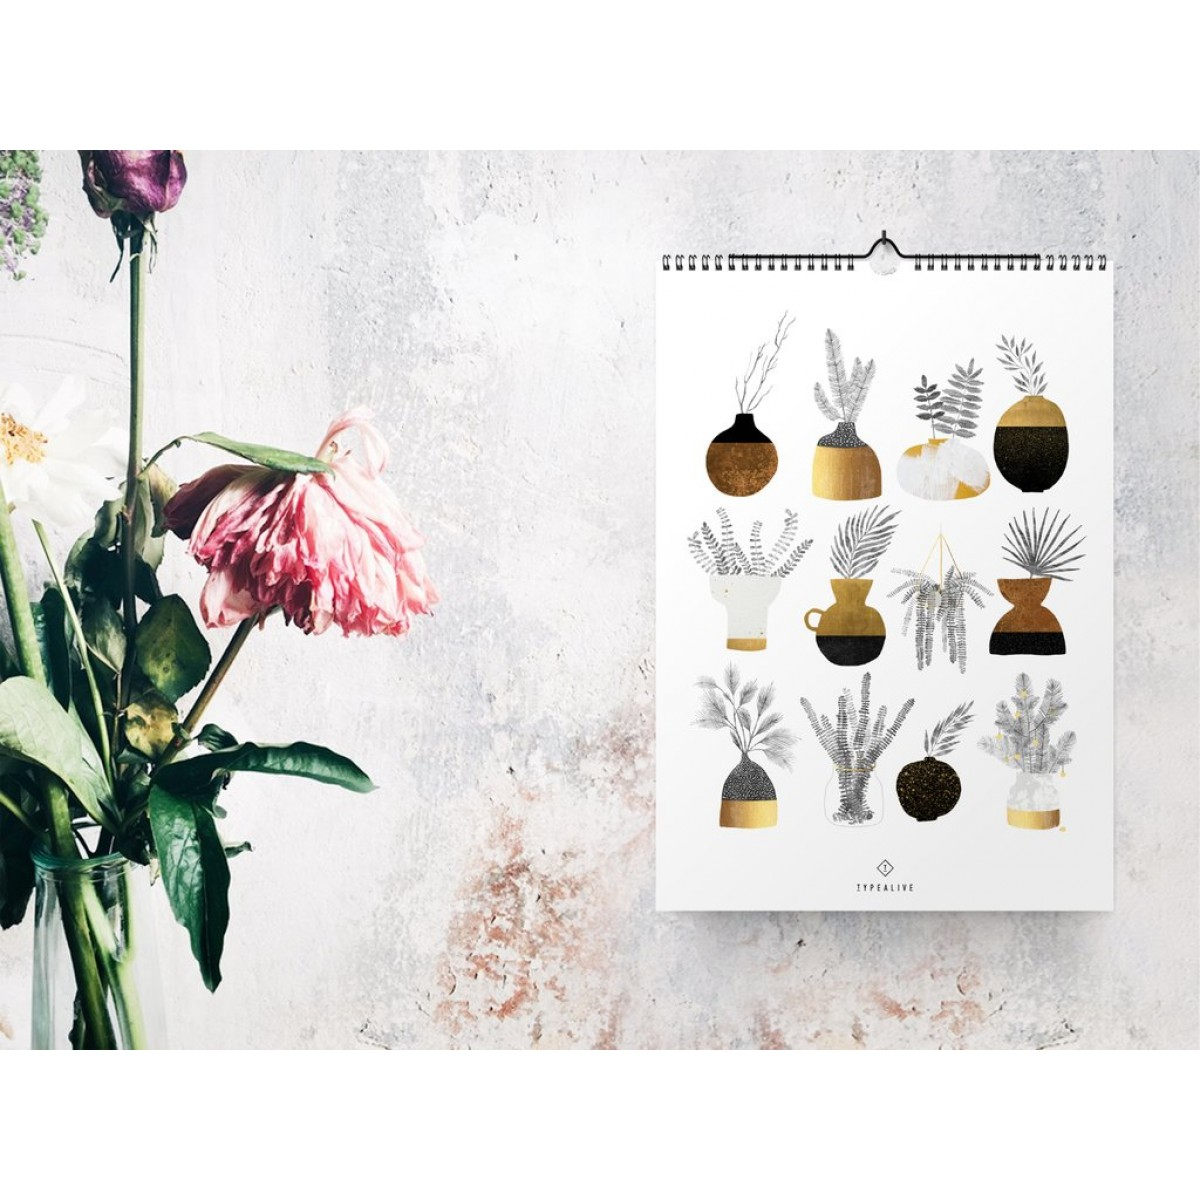 typealive / Wandkalender DIN A4 / Urban Vases 2020